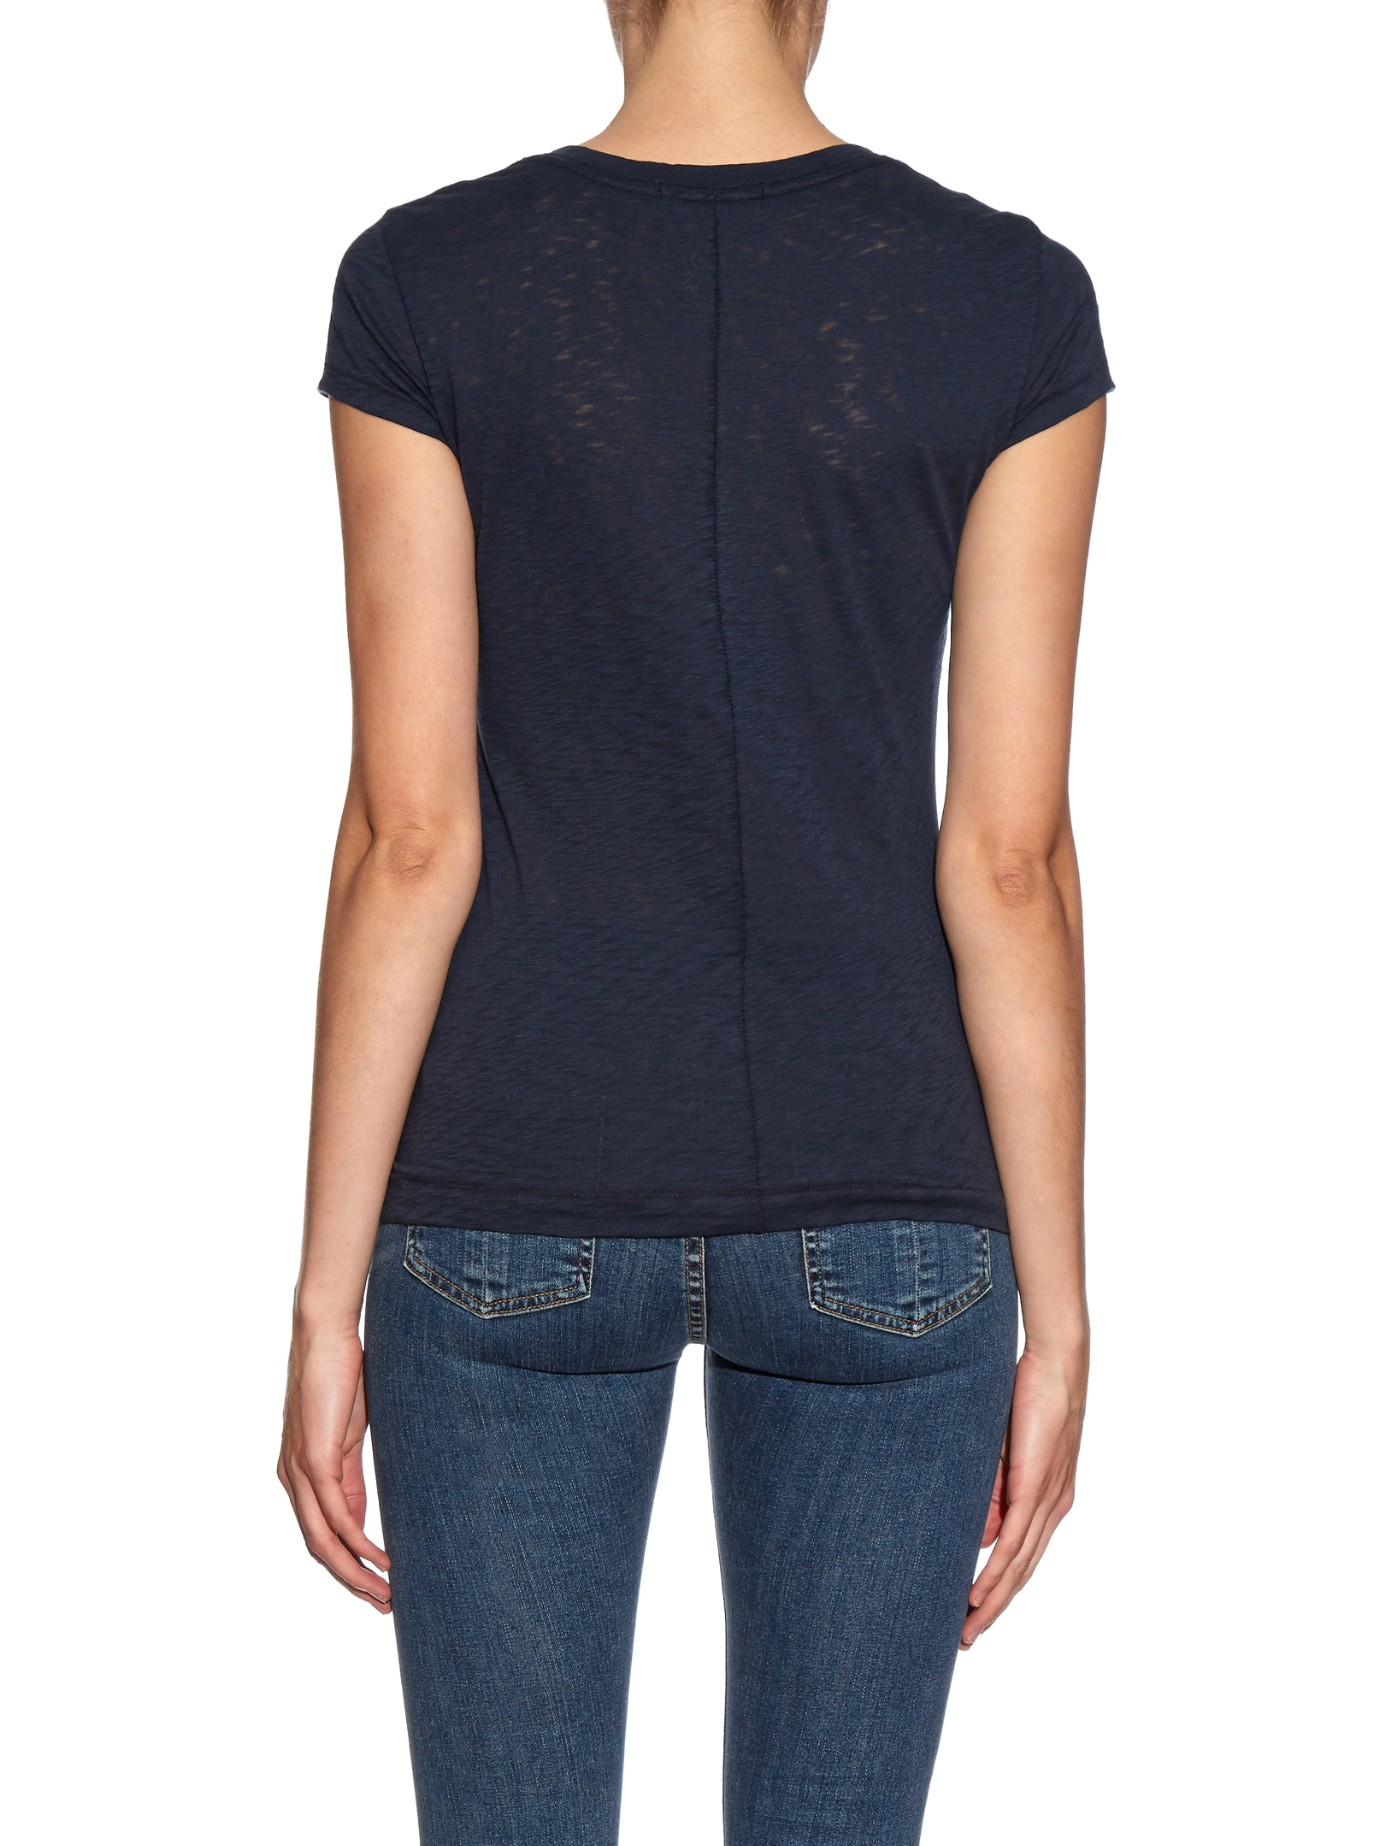 Lyst Rag Bone The Classic Cotton Jersey T Shirt In Blue